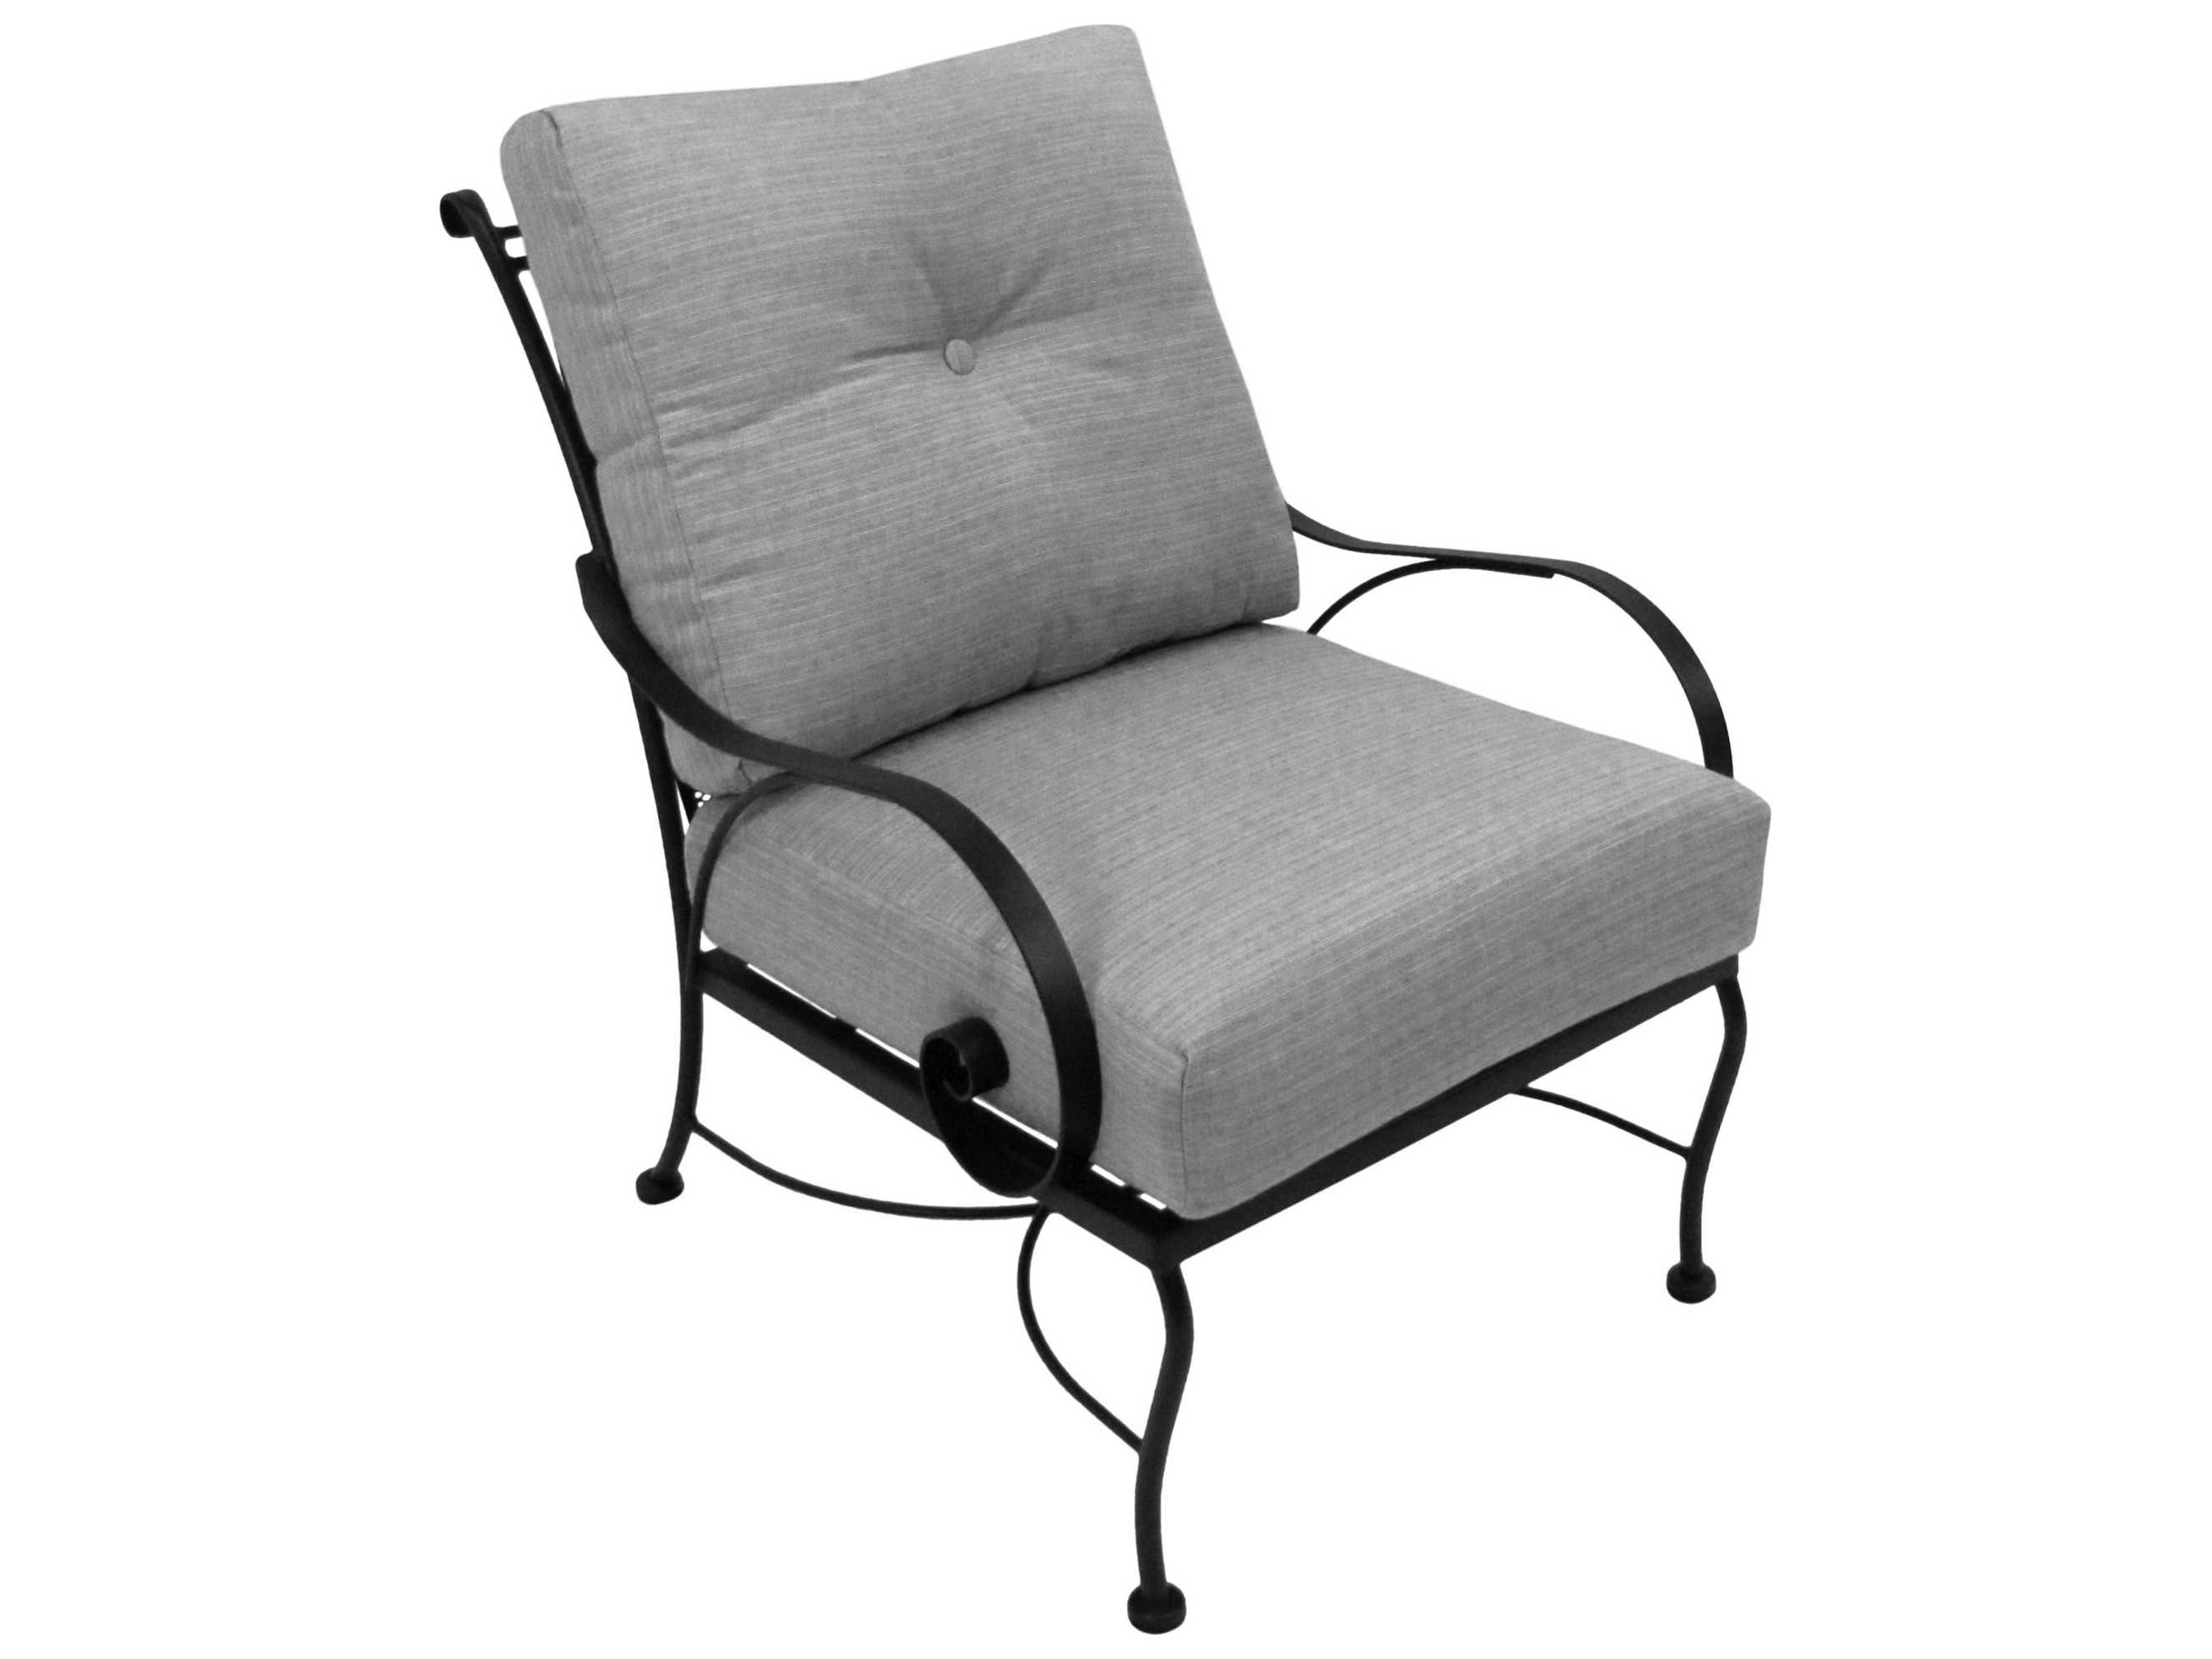 wrought iron chairs meadowcraft monticello wrought iron seated club chair 31263